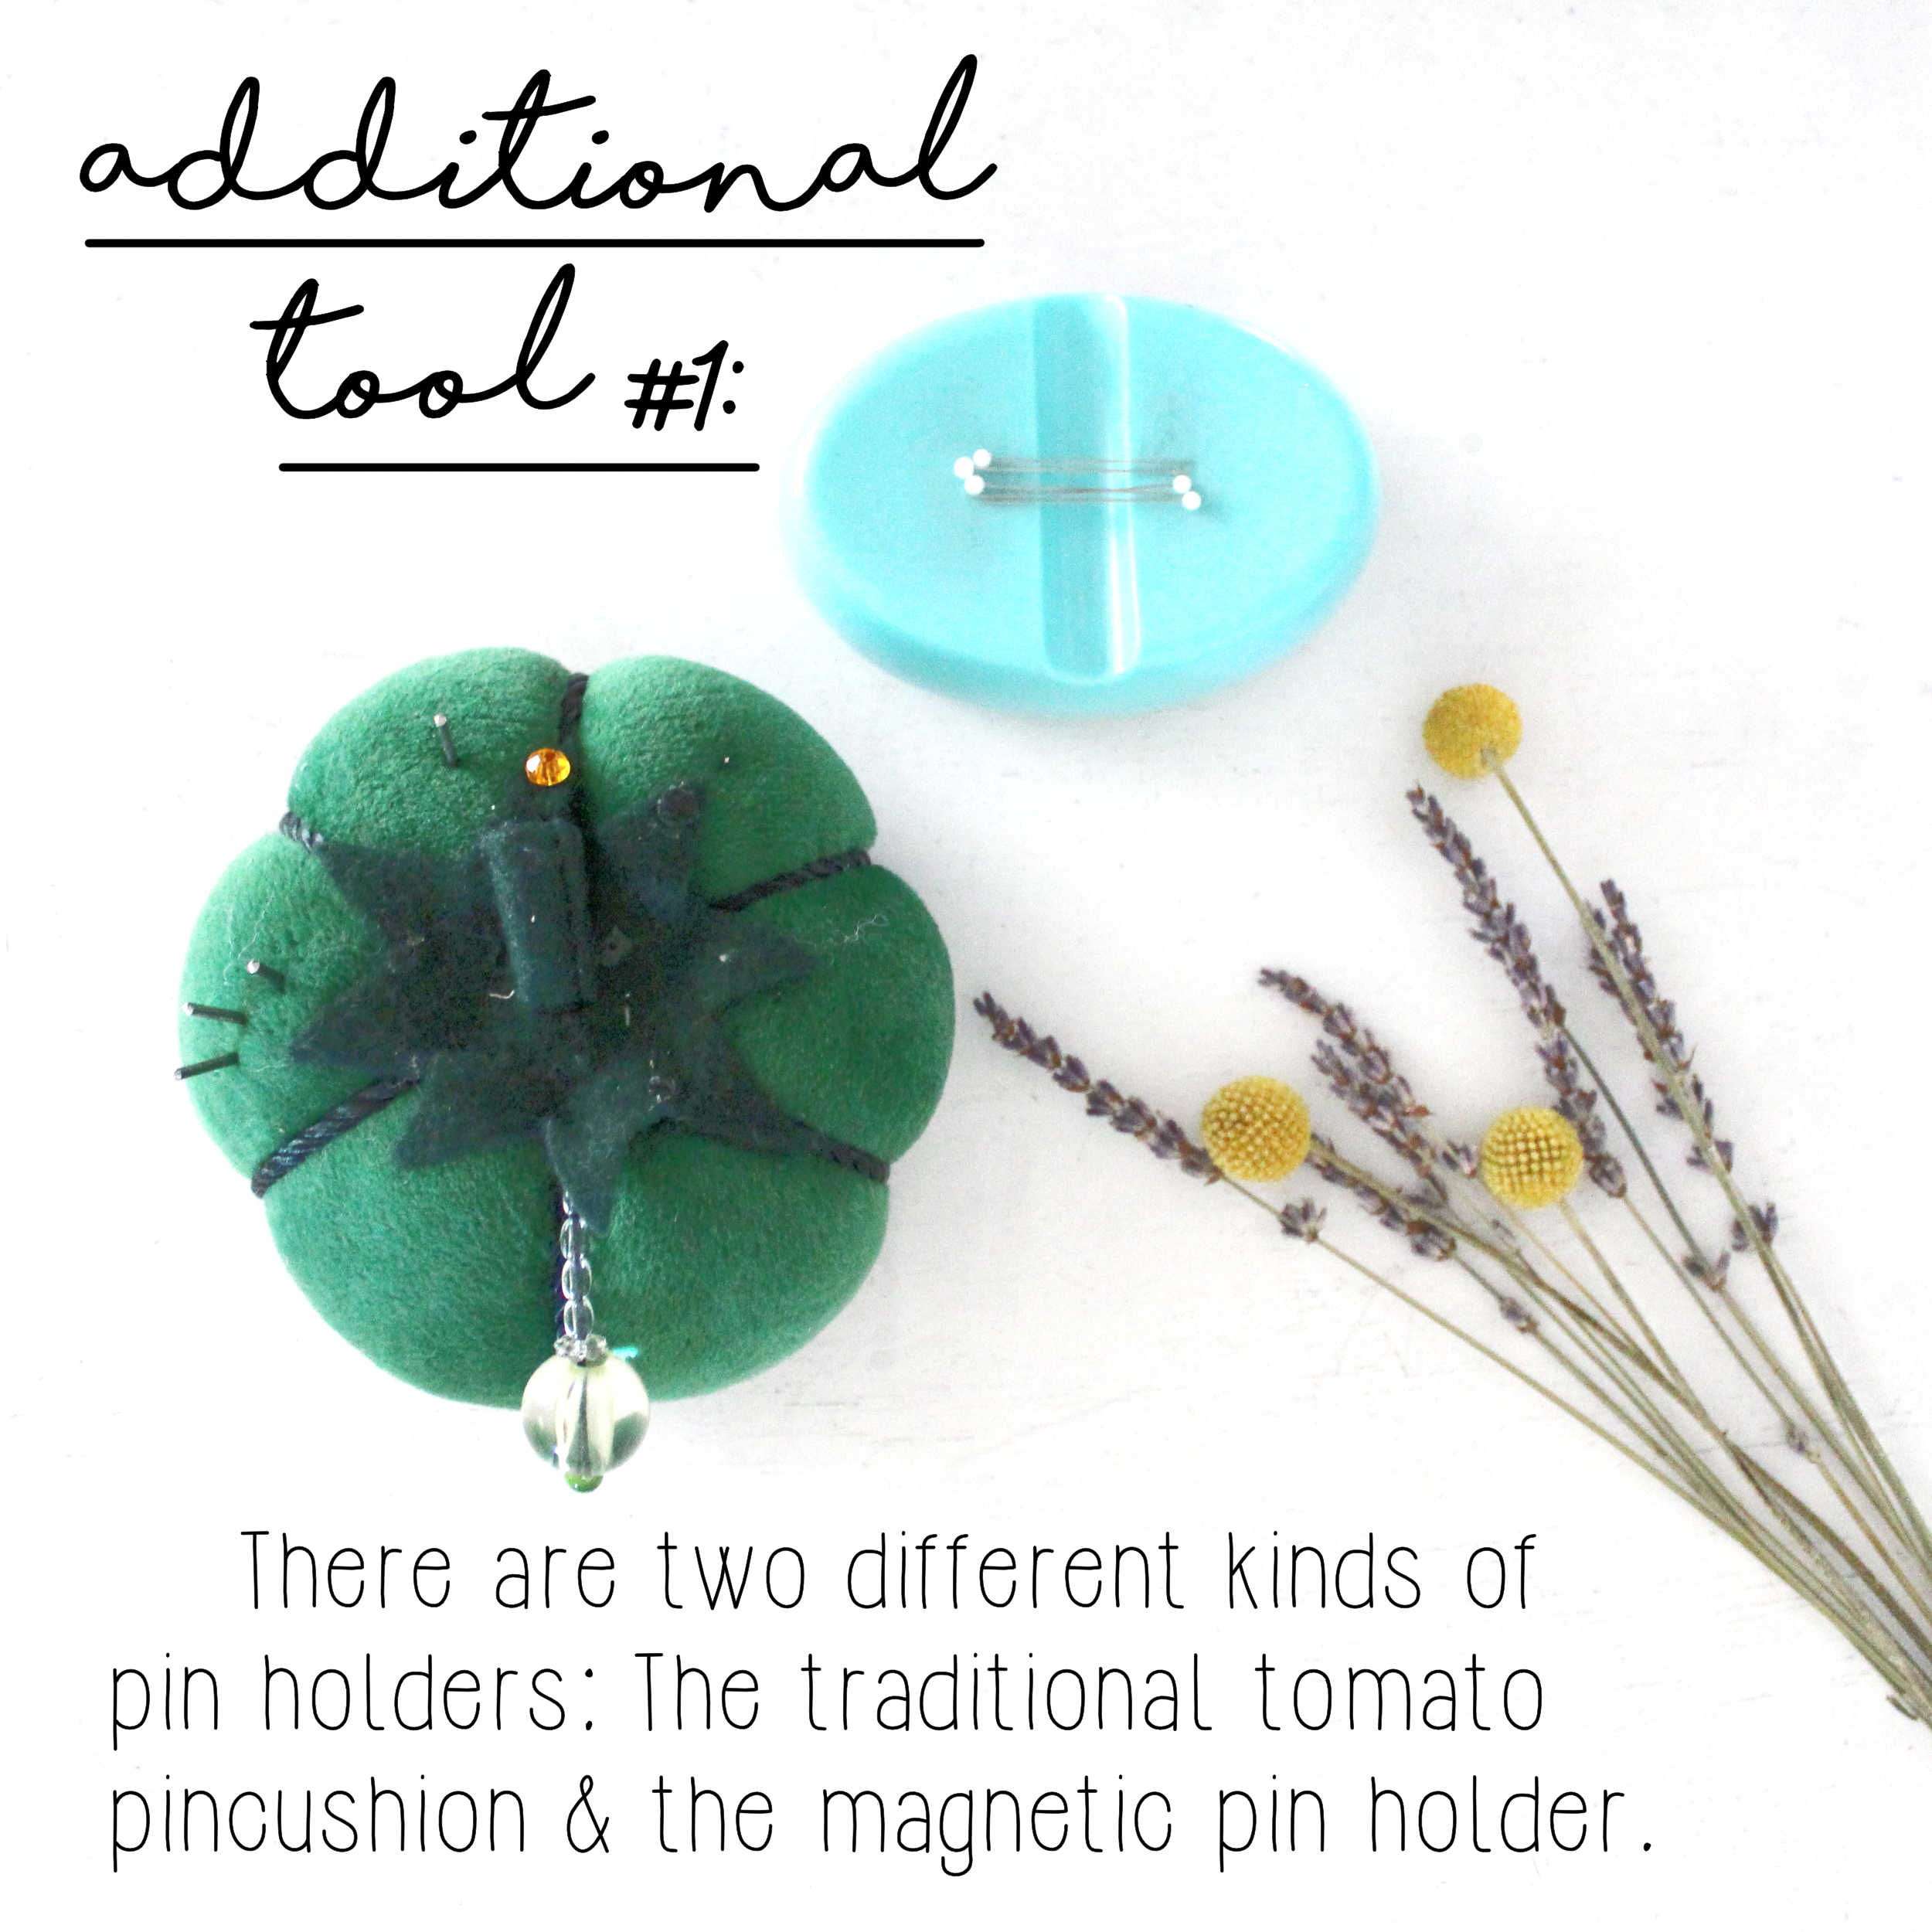 How To Build A Sewing Kit: Additional Tool #1, Pin Holder